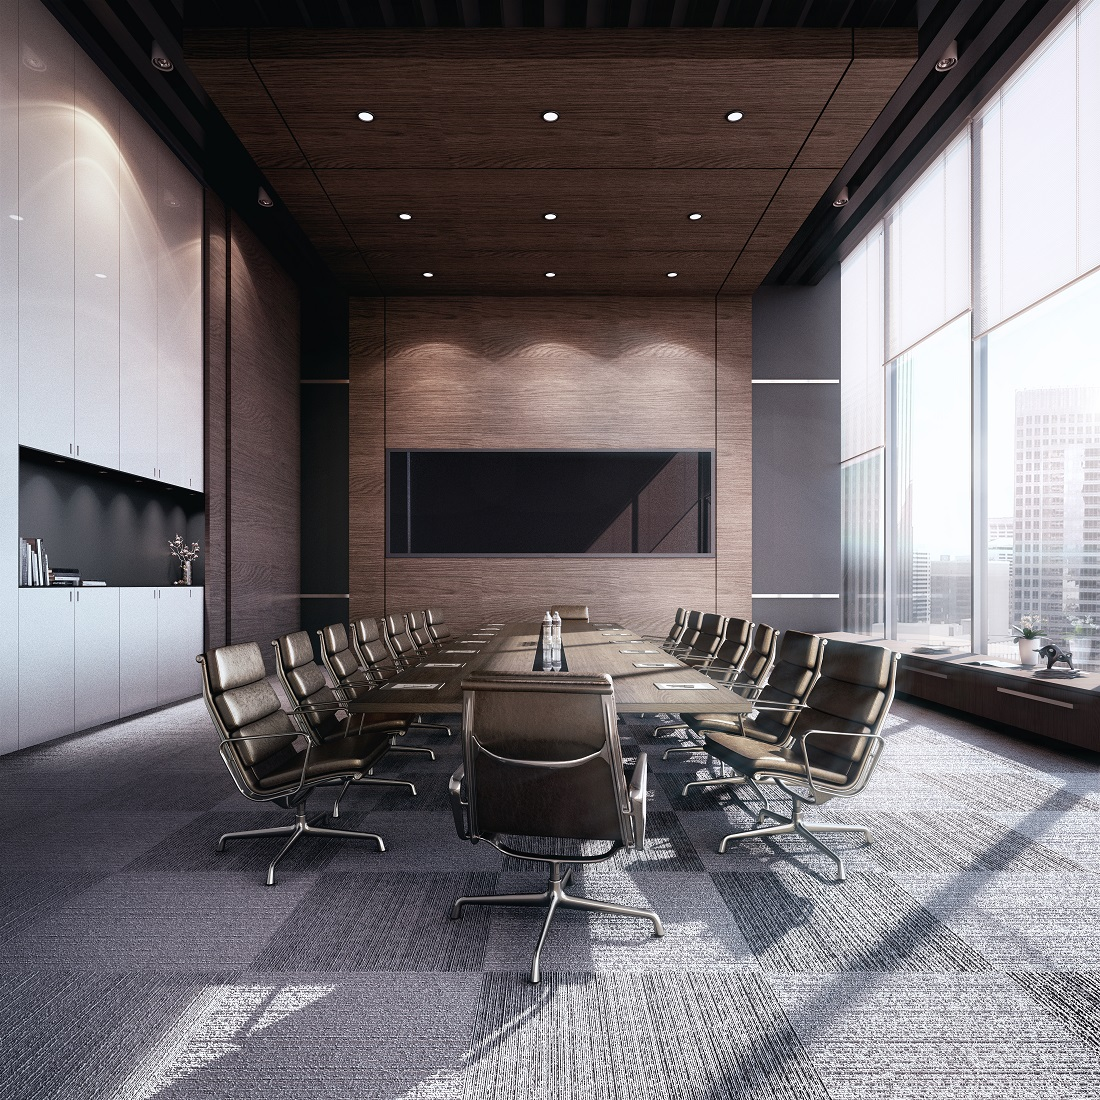 Oxley-Towers-Meeting-Room